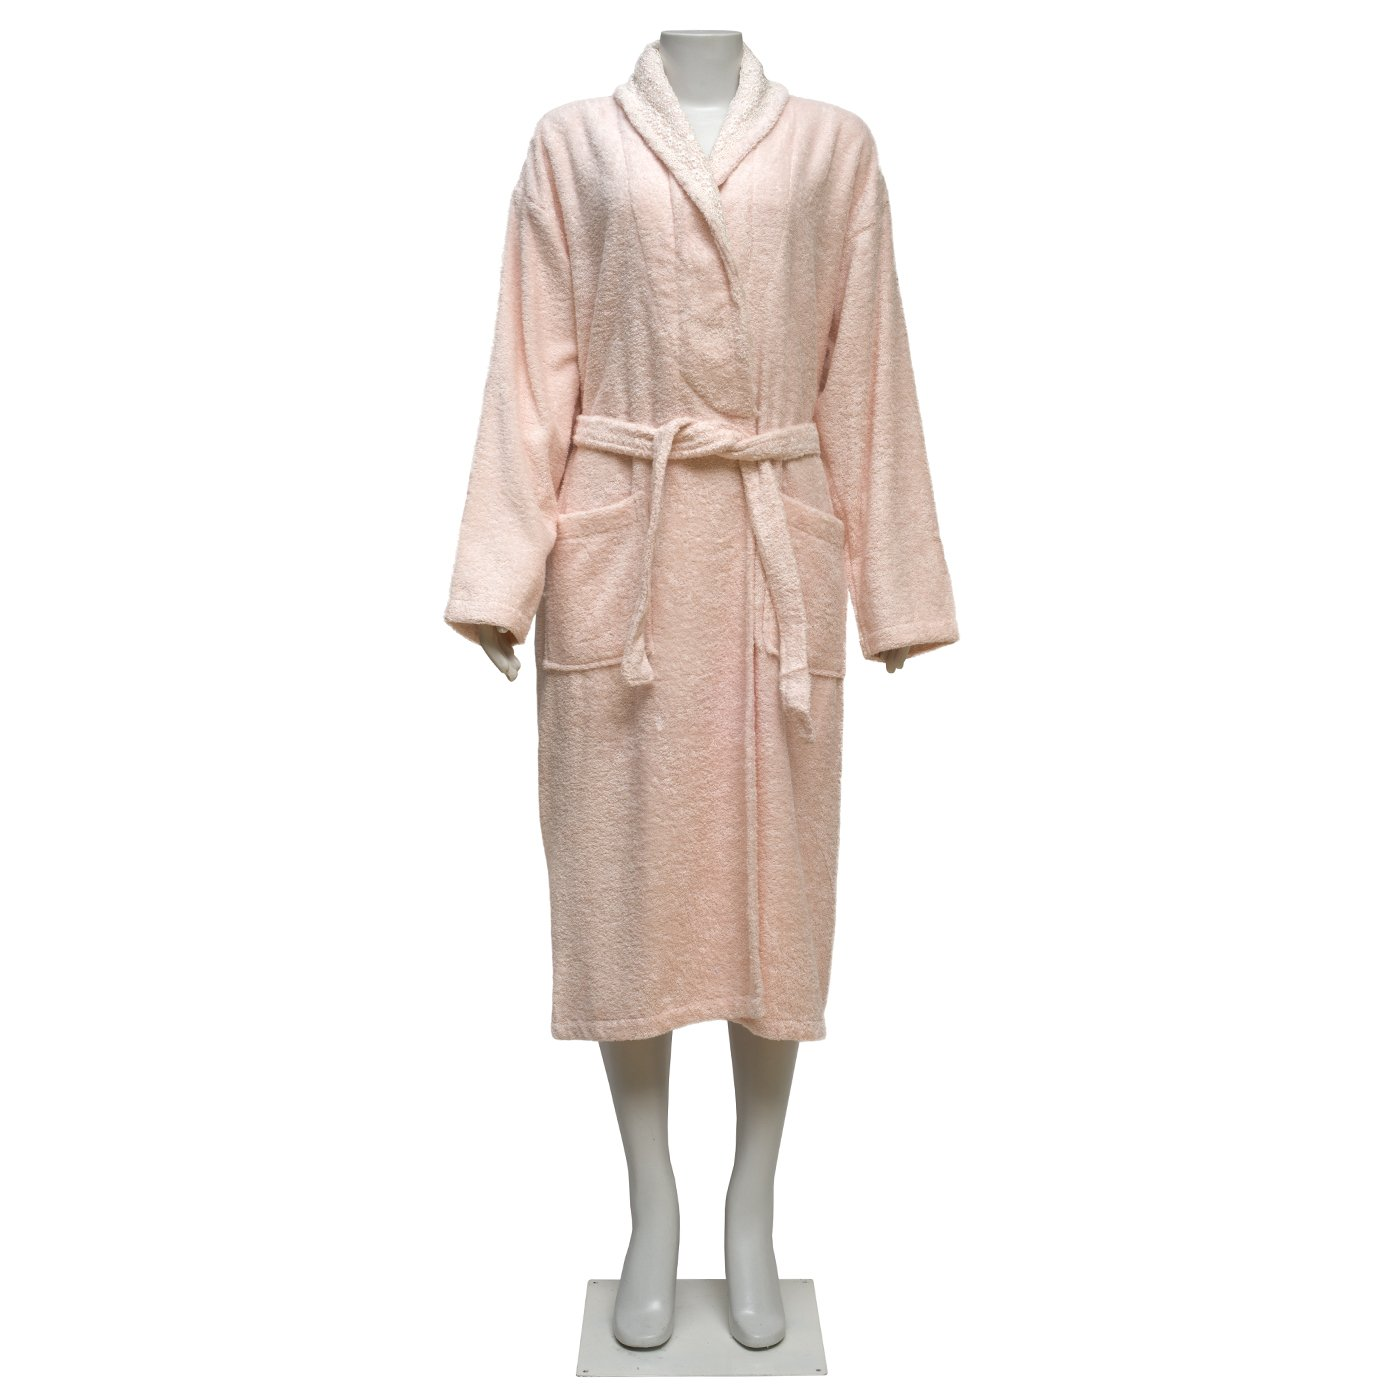 100% Turkish Cotton Extra Plush Bamboo Bathrobe Set with Embroidery Lace, Large Bath Towel, Hair Towel Unisex Terry Bathrobe Set - Moisture Wicking and Odor Resistant (Light Coffee) (Salmon Pink)